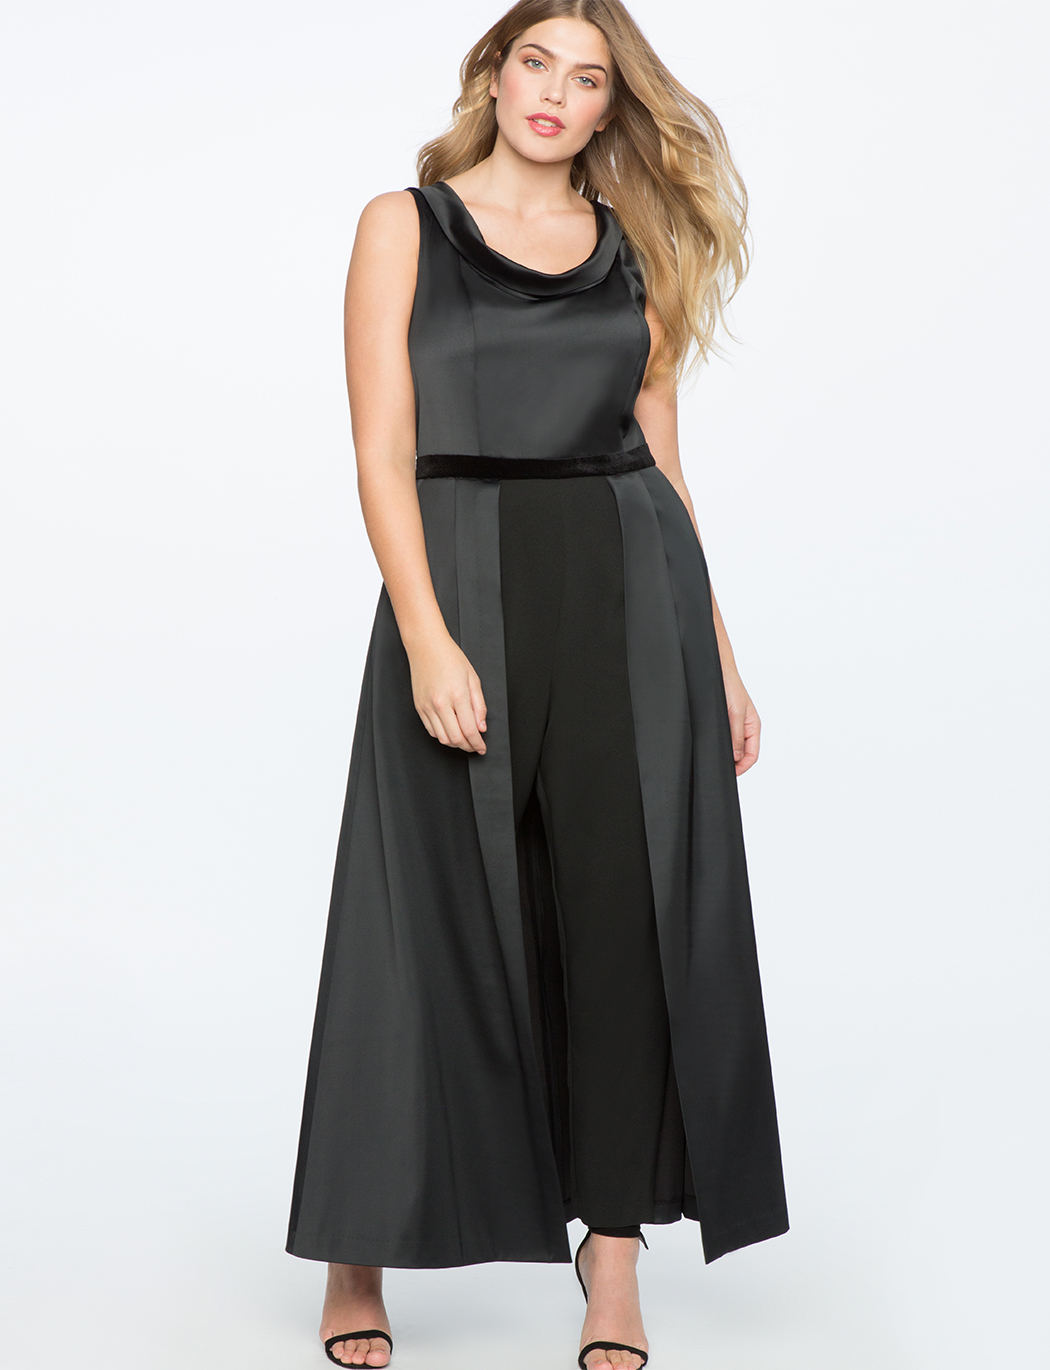 Jumpsuit with Skirt